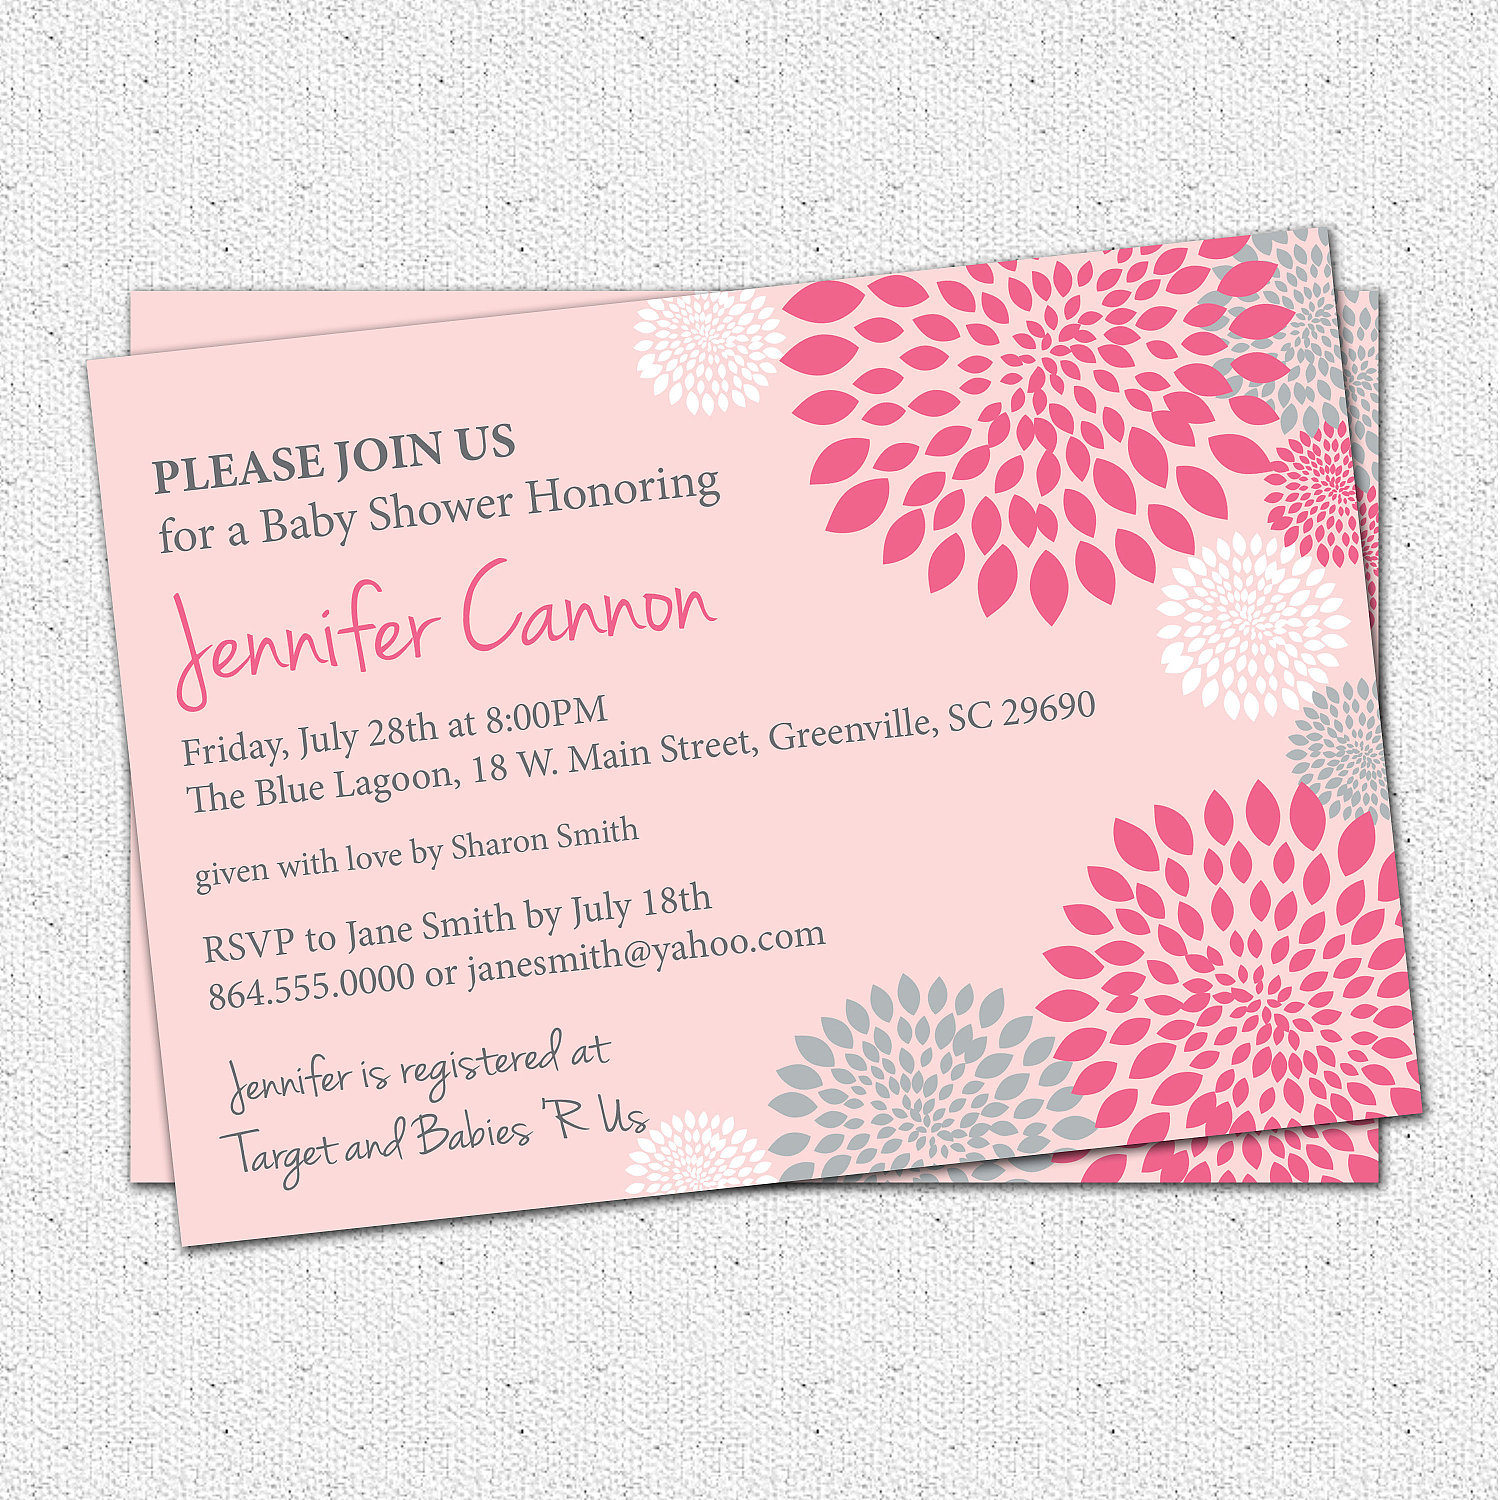 Ba Shower Invitations Girl White Hot And Pale Pink And Grey within dimensions 1500 X 1500